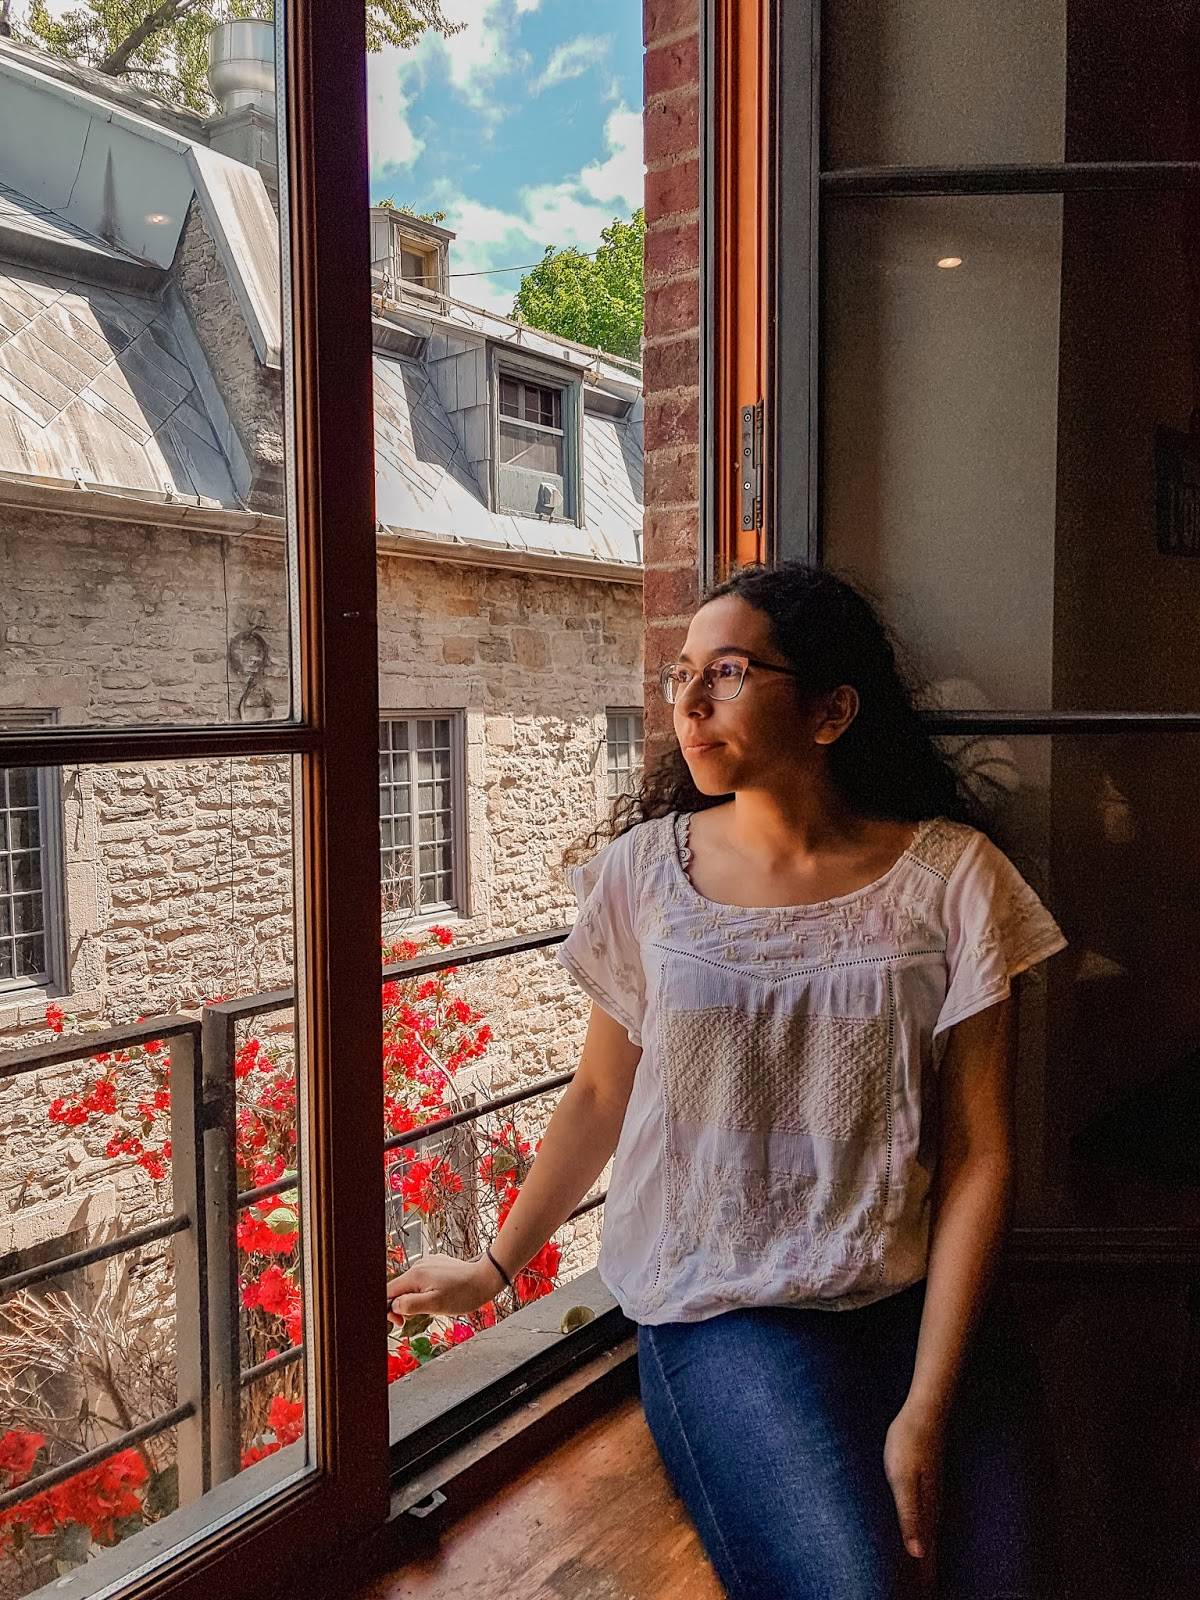 My Plans for When Quarantine is over (visit Old Montreal)